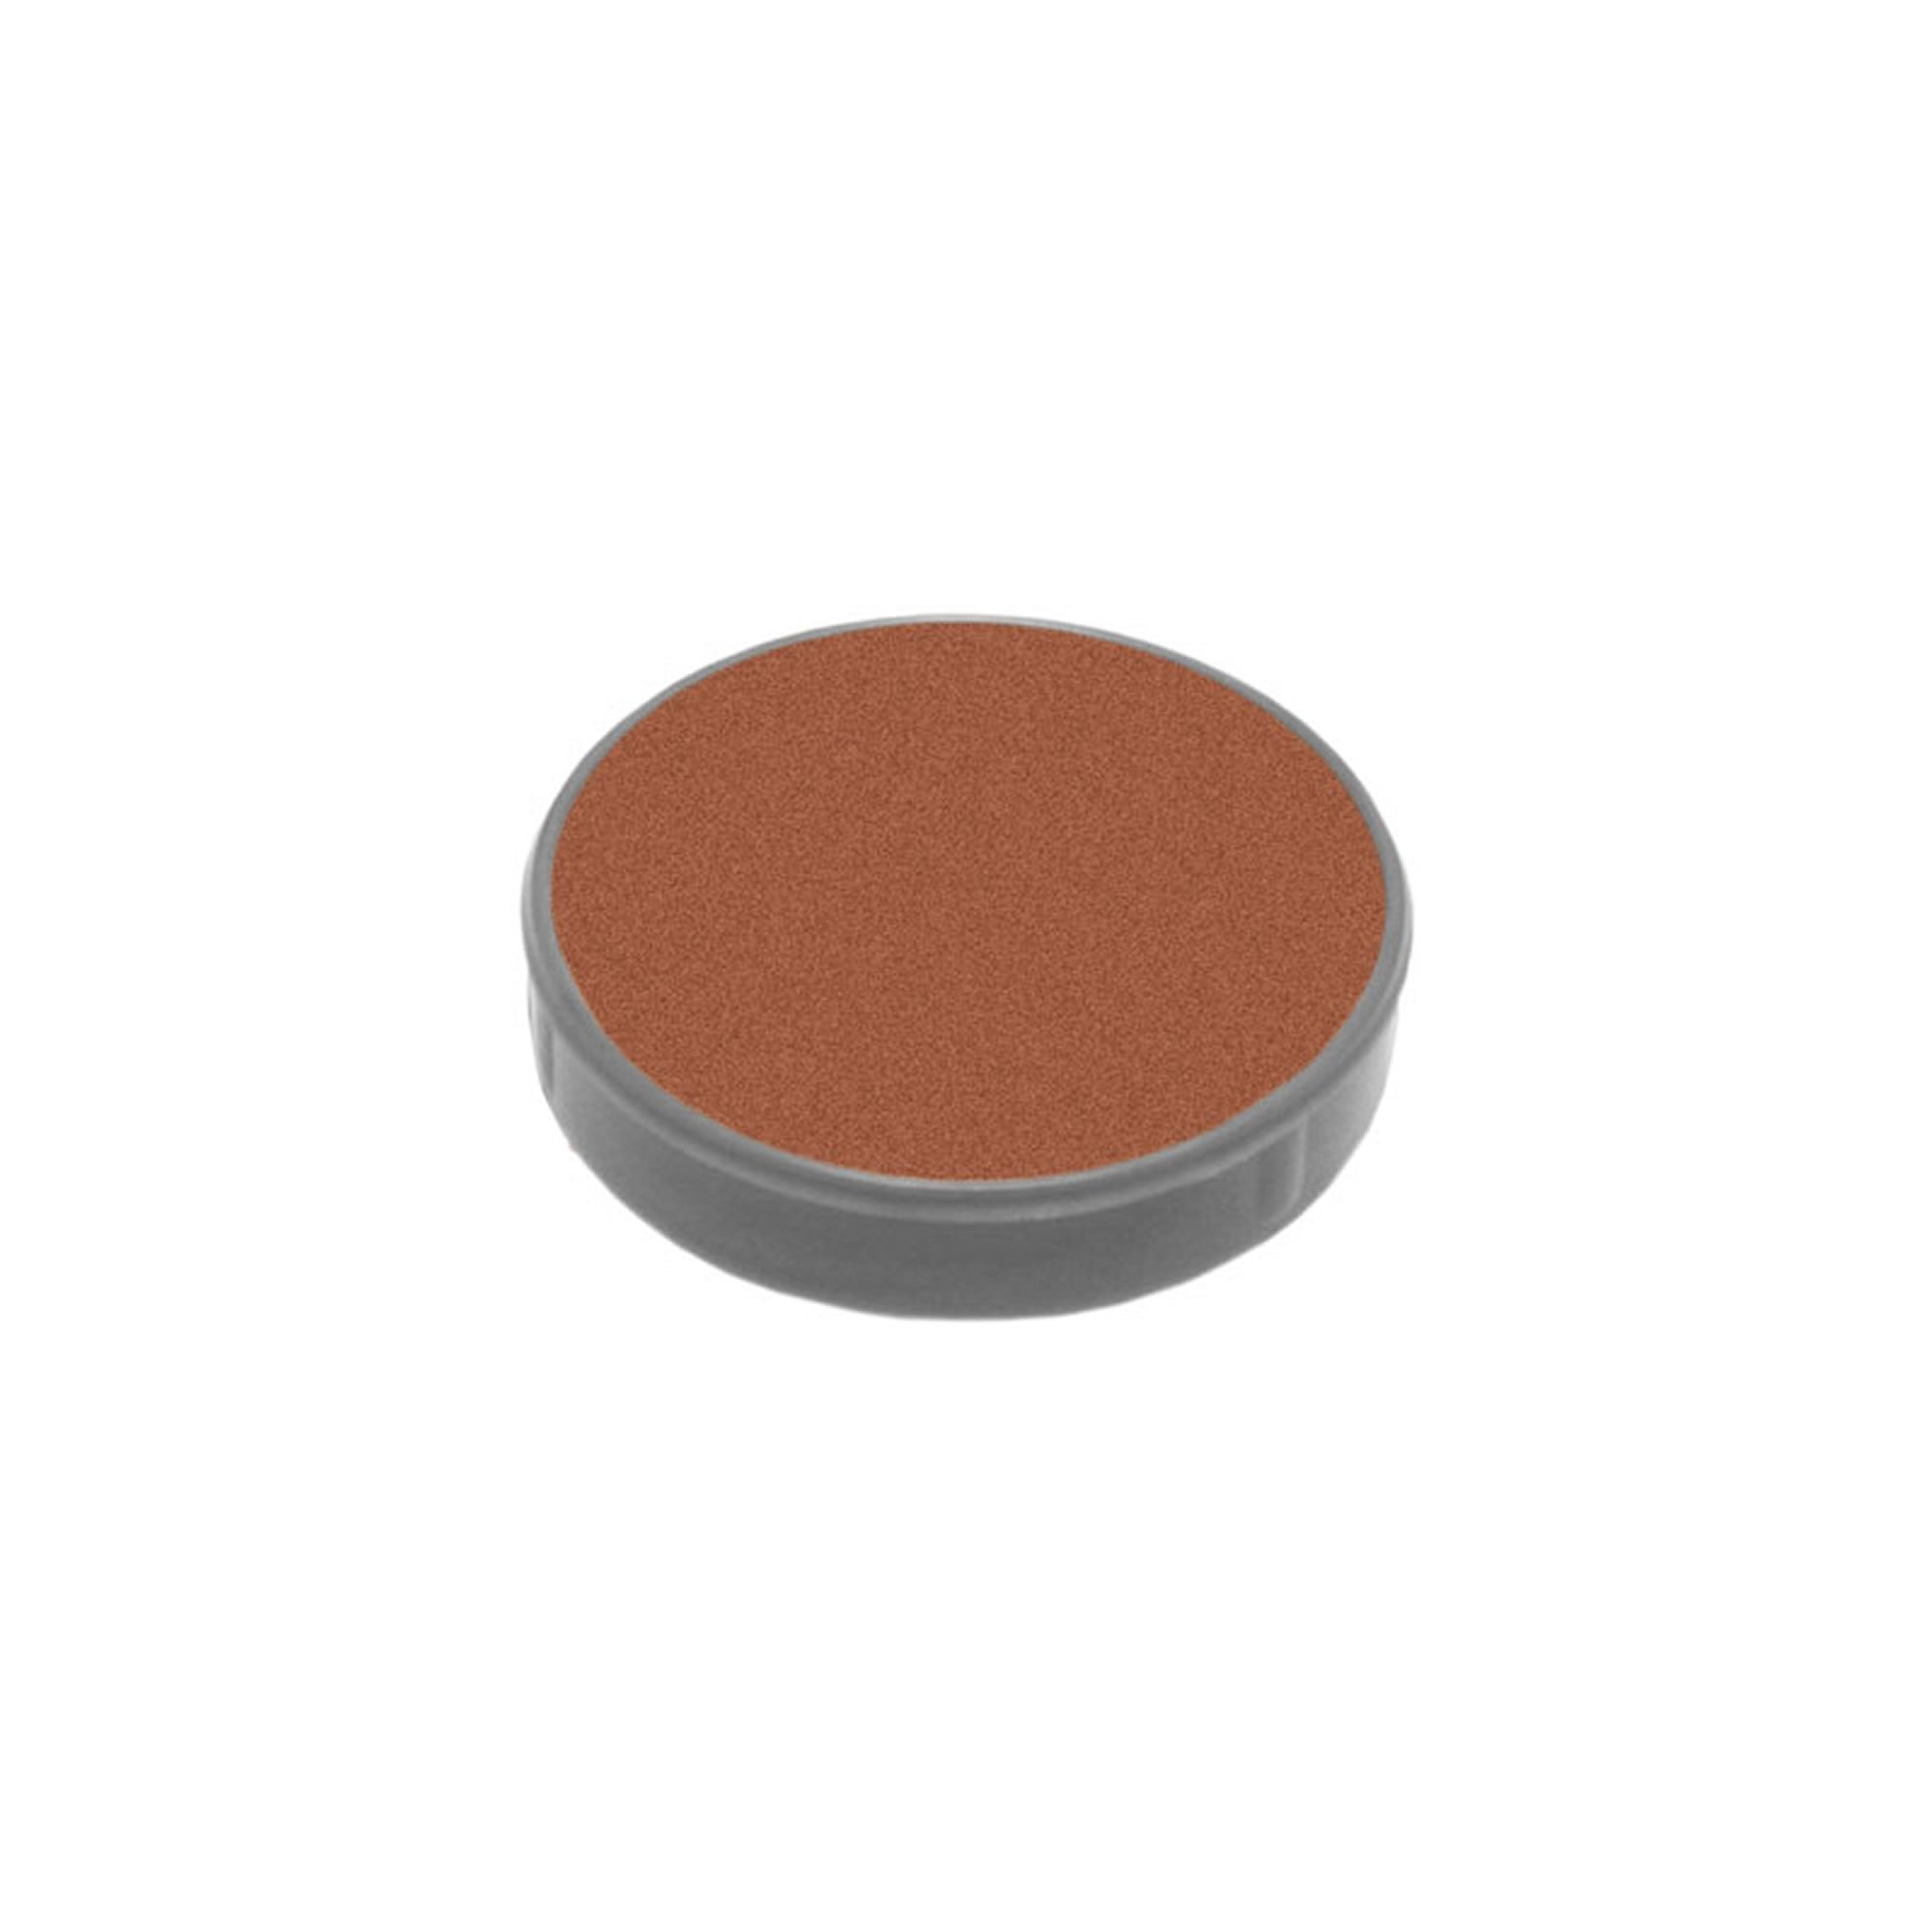 Grimas Pearl Pure Crème Foundation & Paint - 703 Copper - Red Carpet FX - Professional Makeup